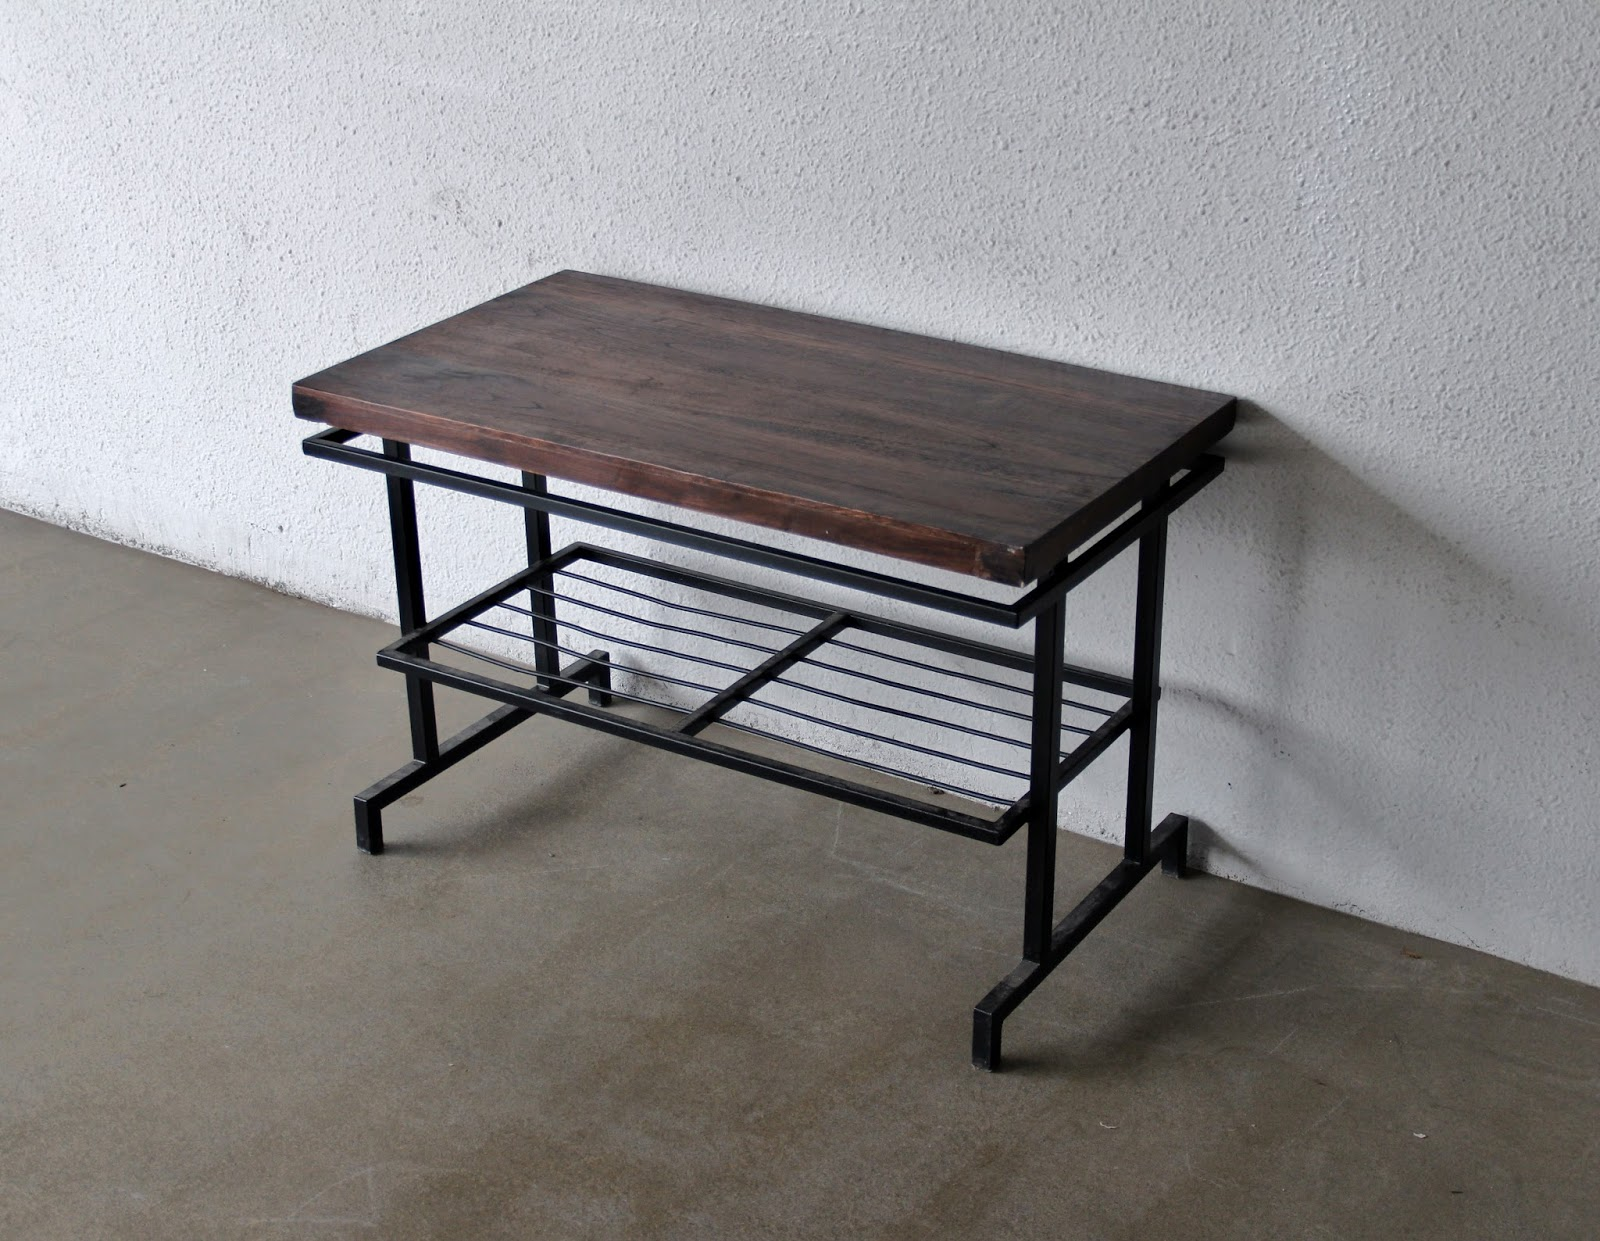 Second Charm Collections Combining Metal And Wood For That Industrial Look Bobs Furniture